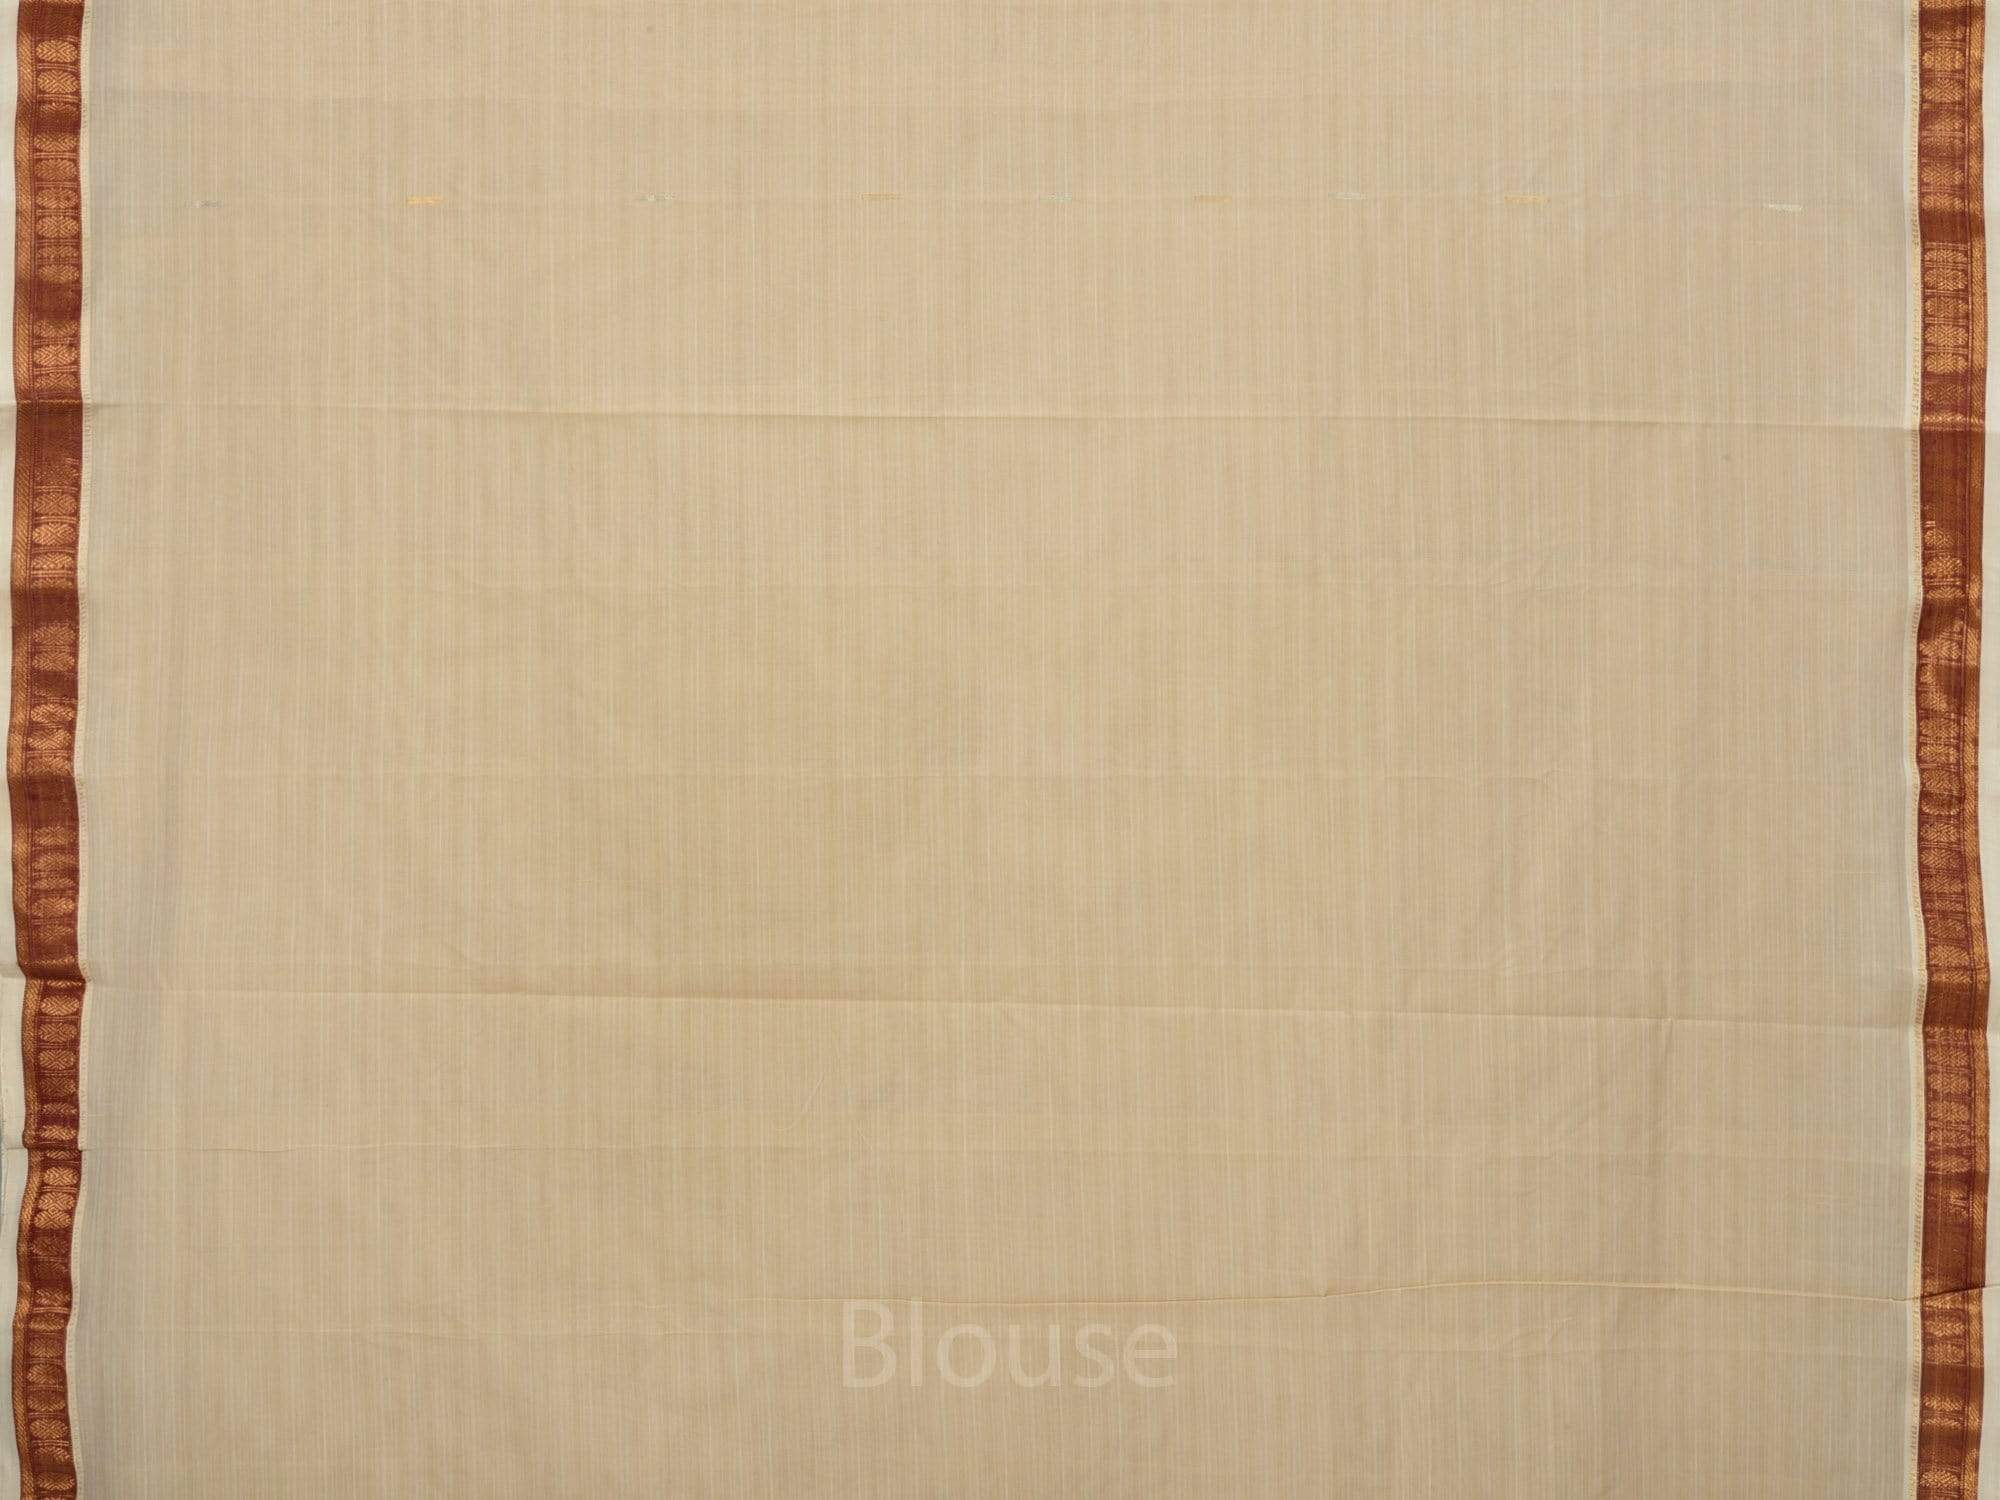 Cream Khadi Cotton Handloom Saree with Doby Border and Zari Strips Pallu Design No Blouse kh0428